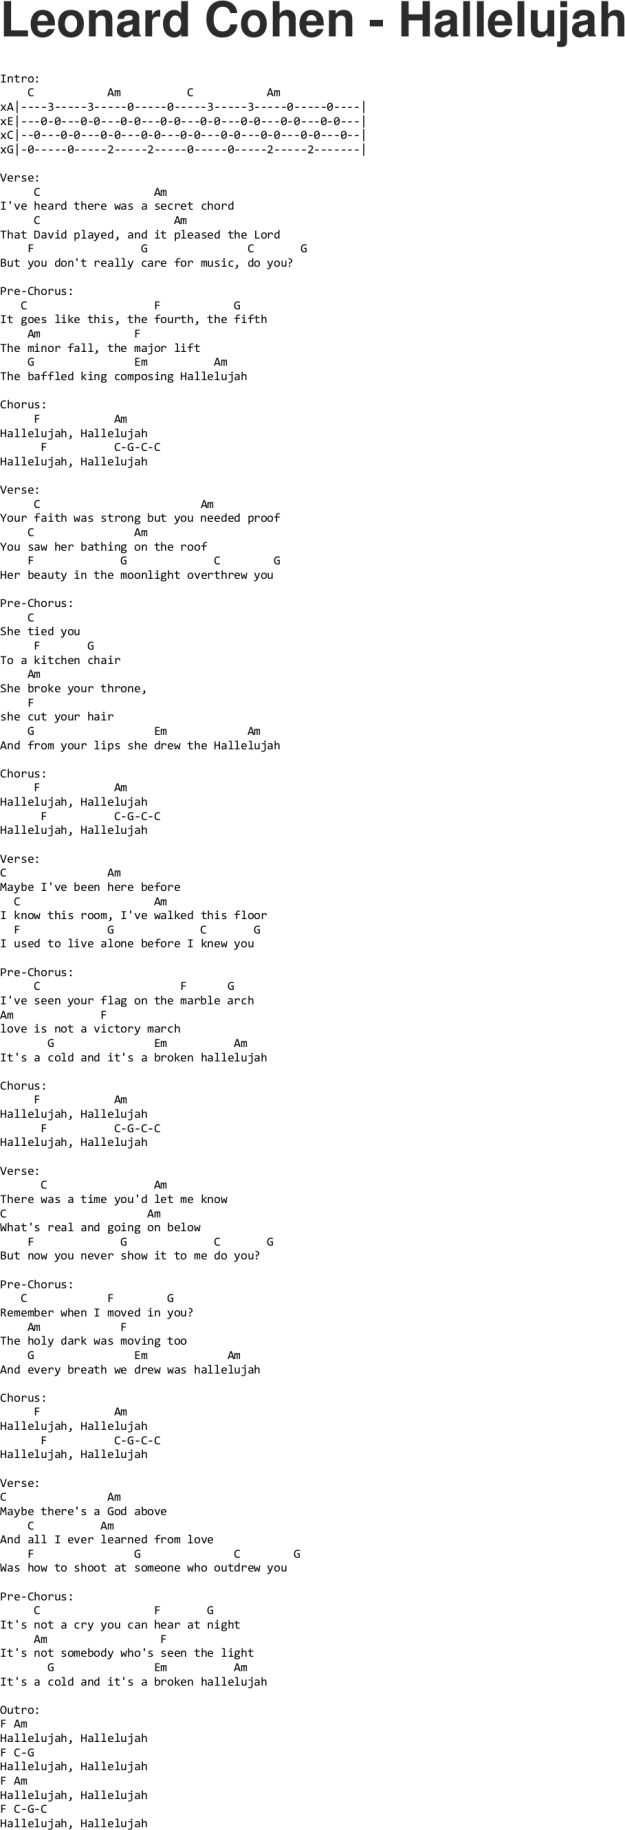 Leonard Cohen - Hallelujah ukulele tabs... great song but I think him singing it is creepy. Others sing it better.